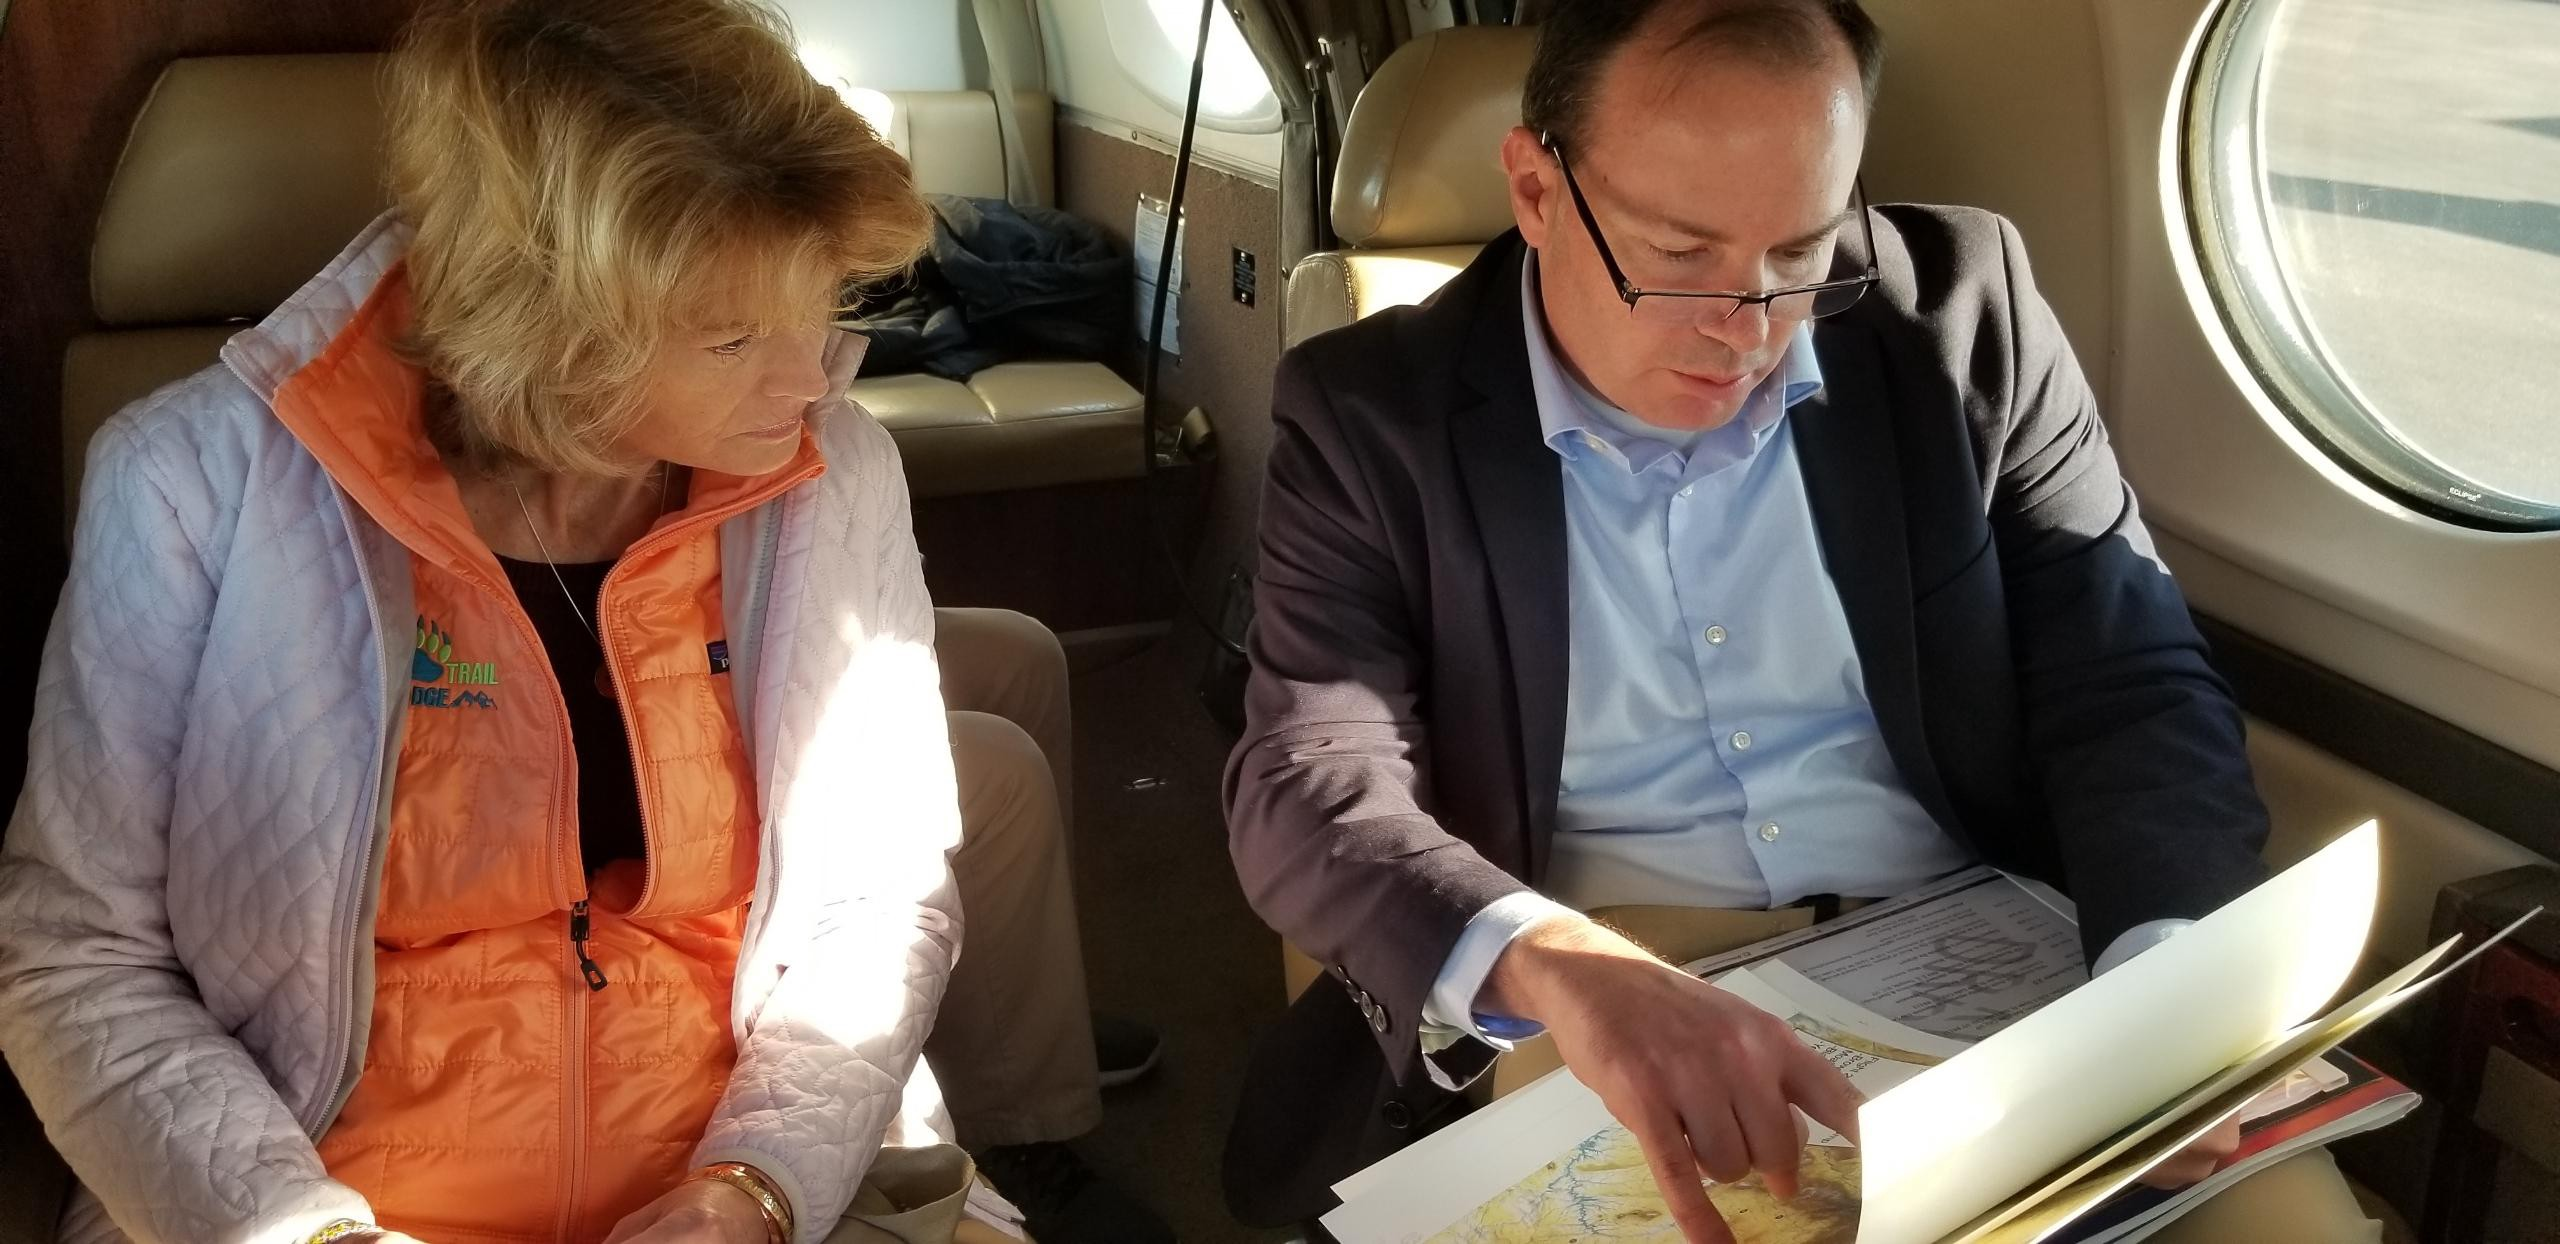 Discussing Utah's public lands with my colleague Senator Murkowski on our way to Moab, UT